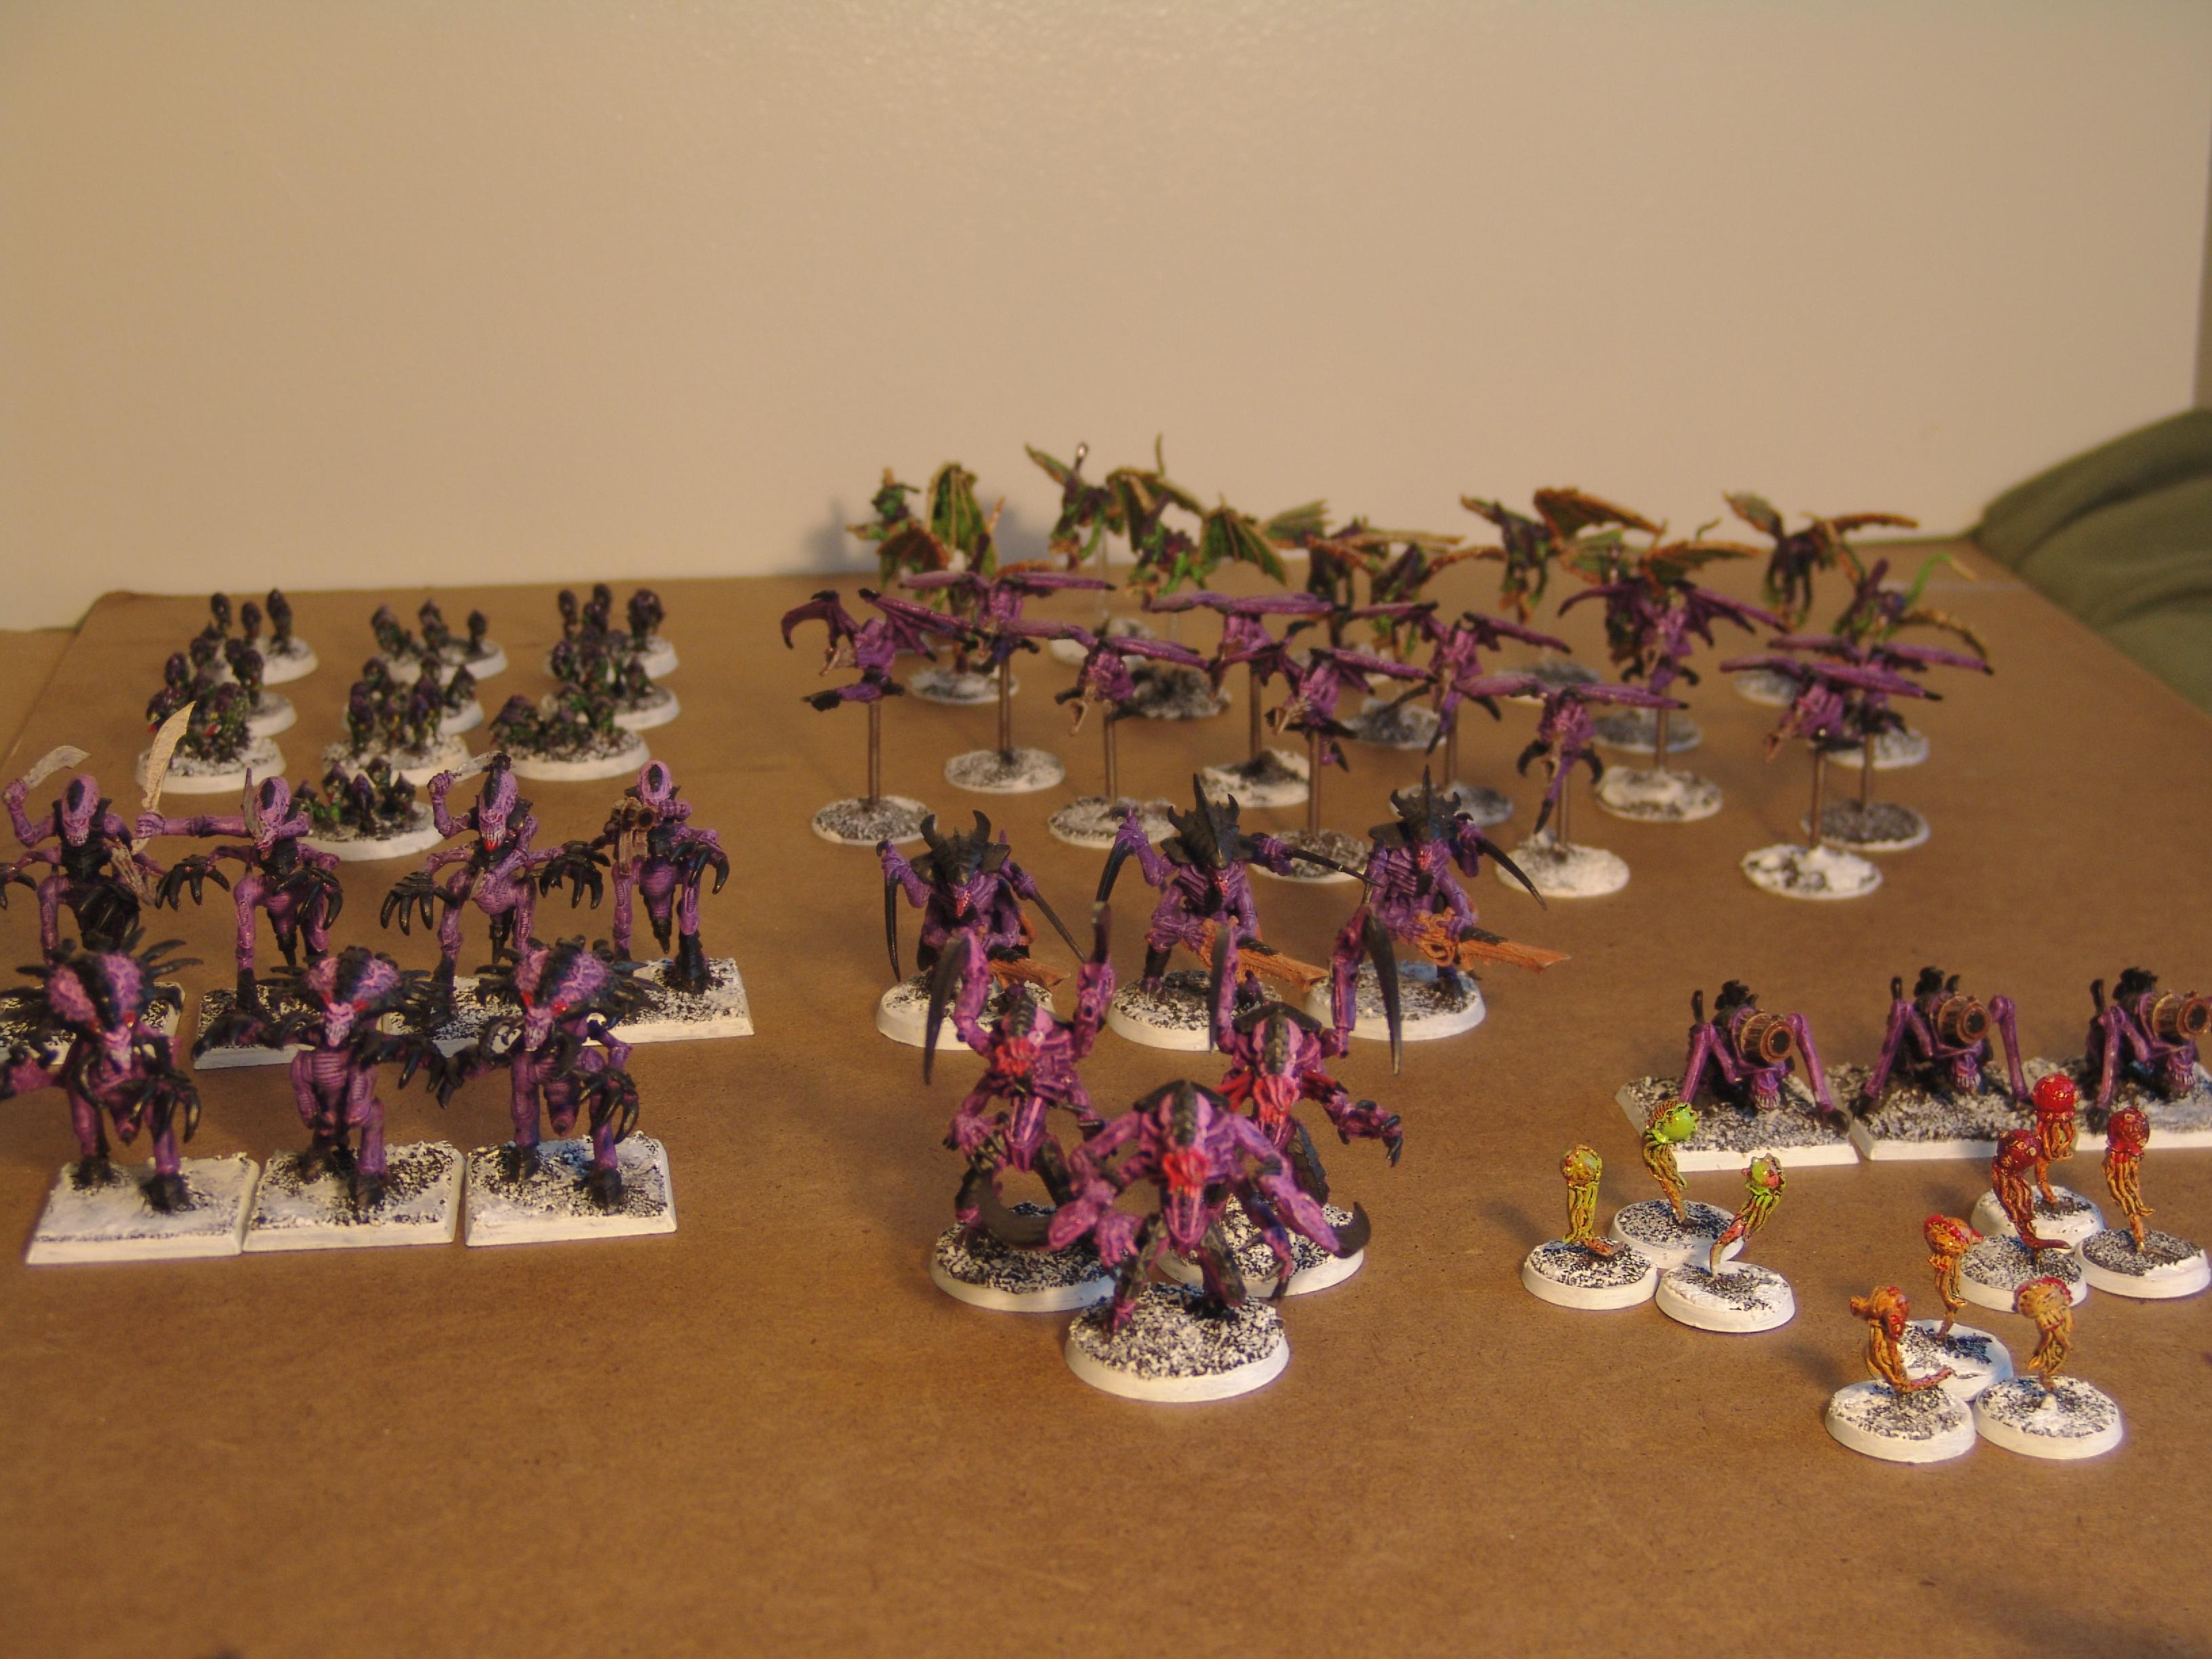 Biovore, Gargoyle, Iceworld, Lictor, Out Of Production, Purple, Ripper, Snow, Tyranids, Warriors, Zoanthrope